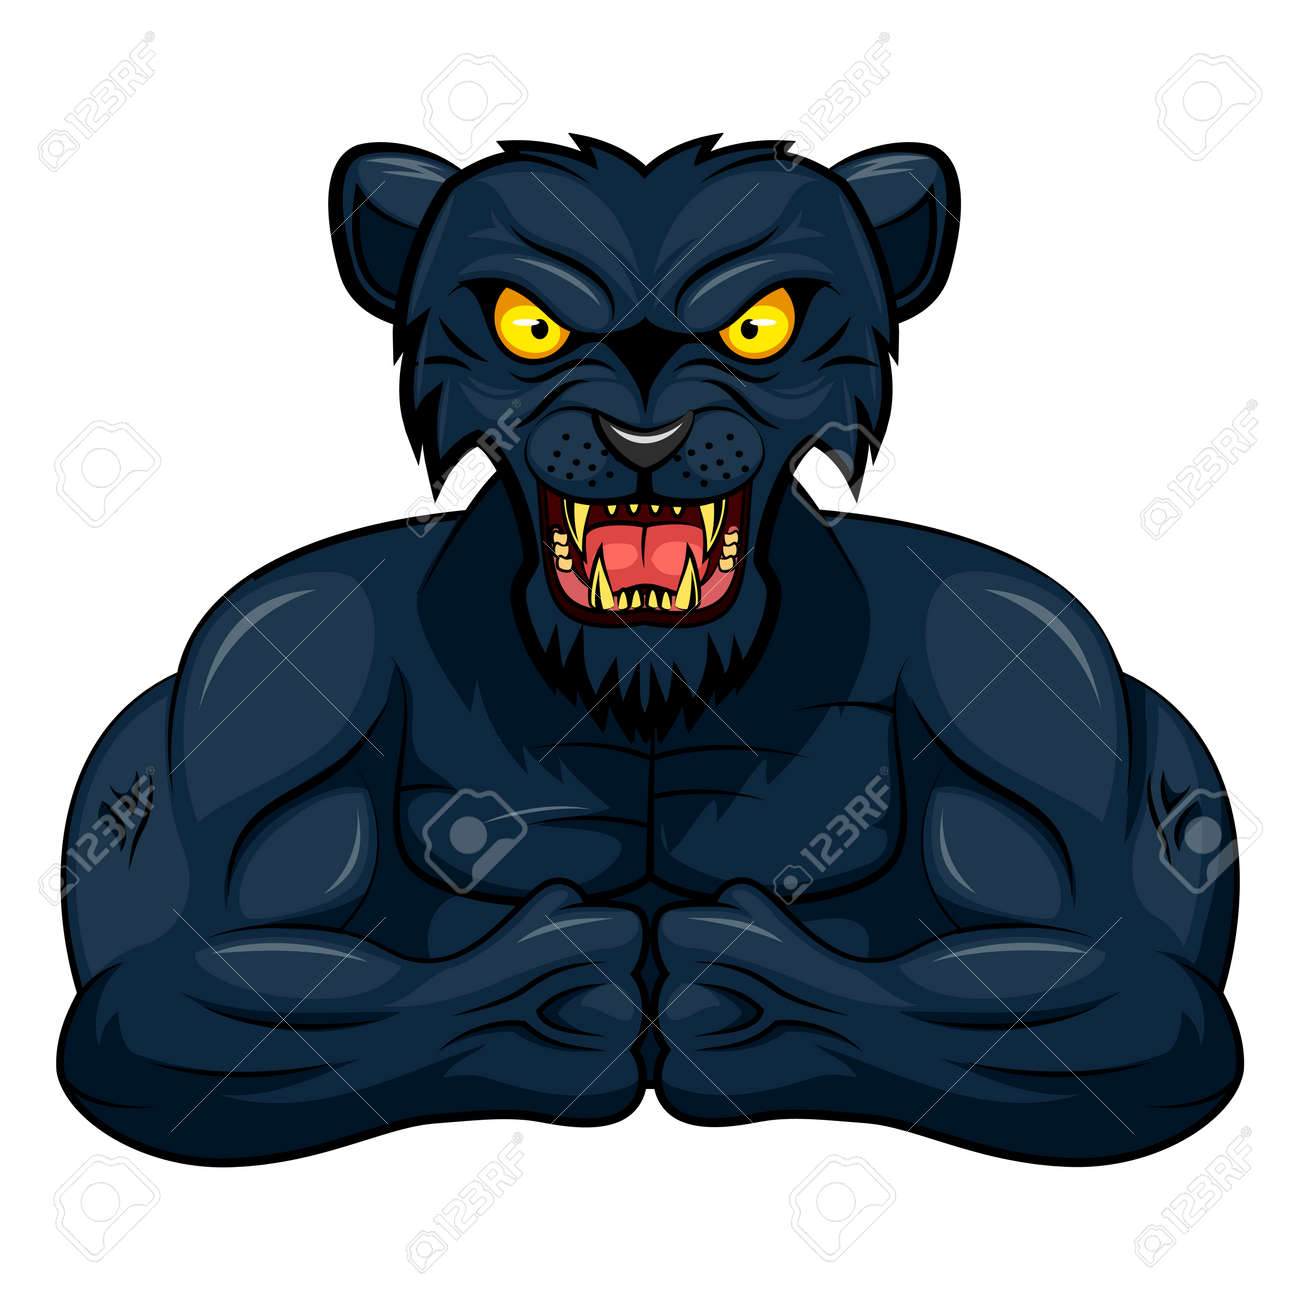 angry strong panther mascot vector illustration royalty free rh 123rf com Black and White Panther Head Panther Clip Art Black and White